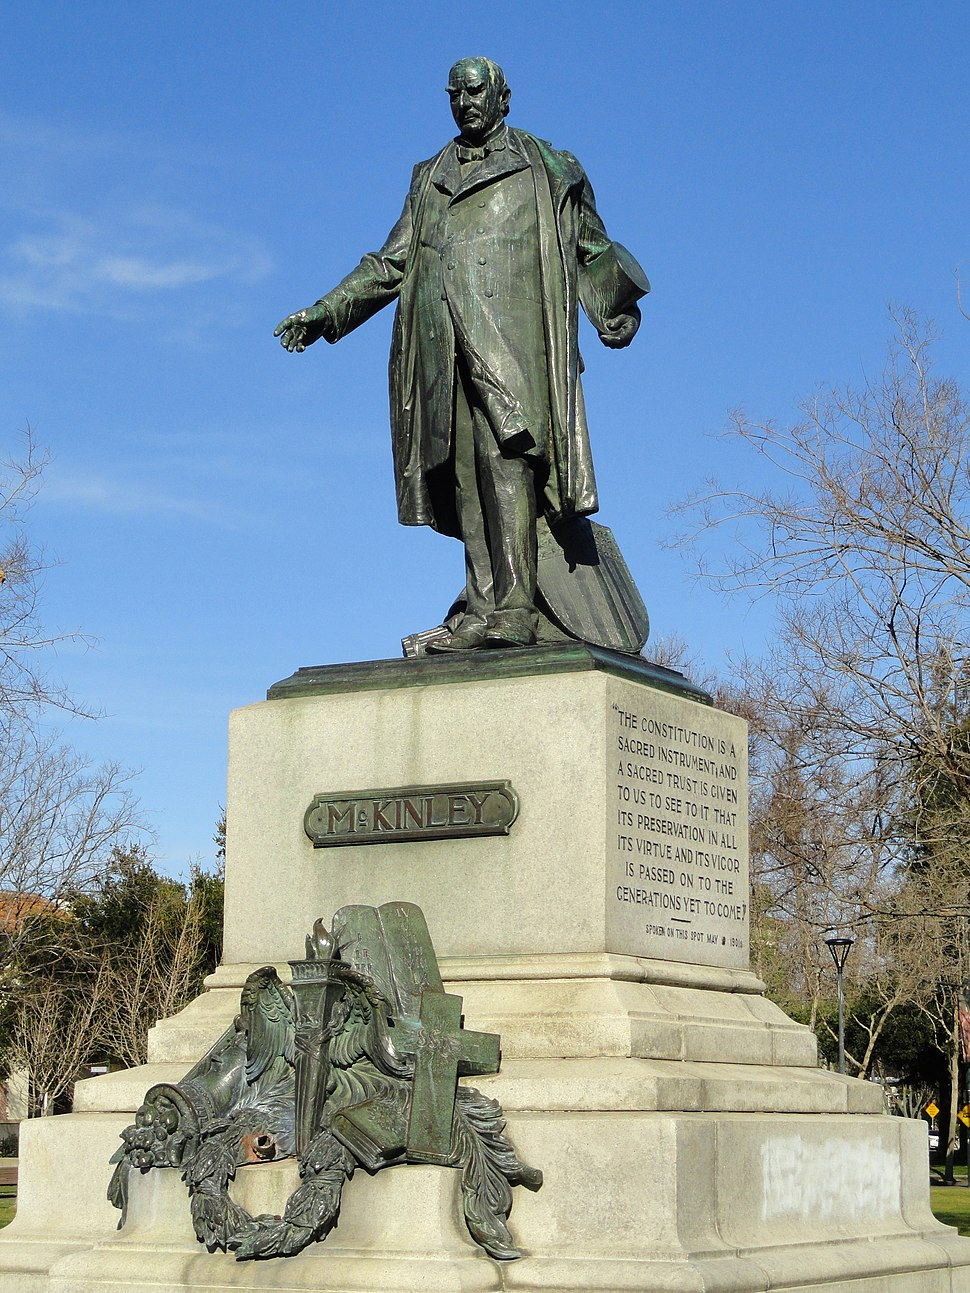 William McKinley statue, San Jose, California - DSC03825